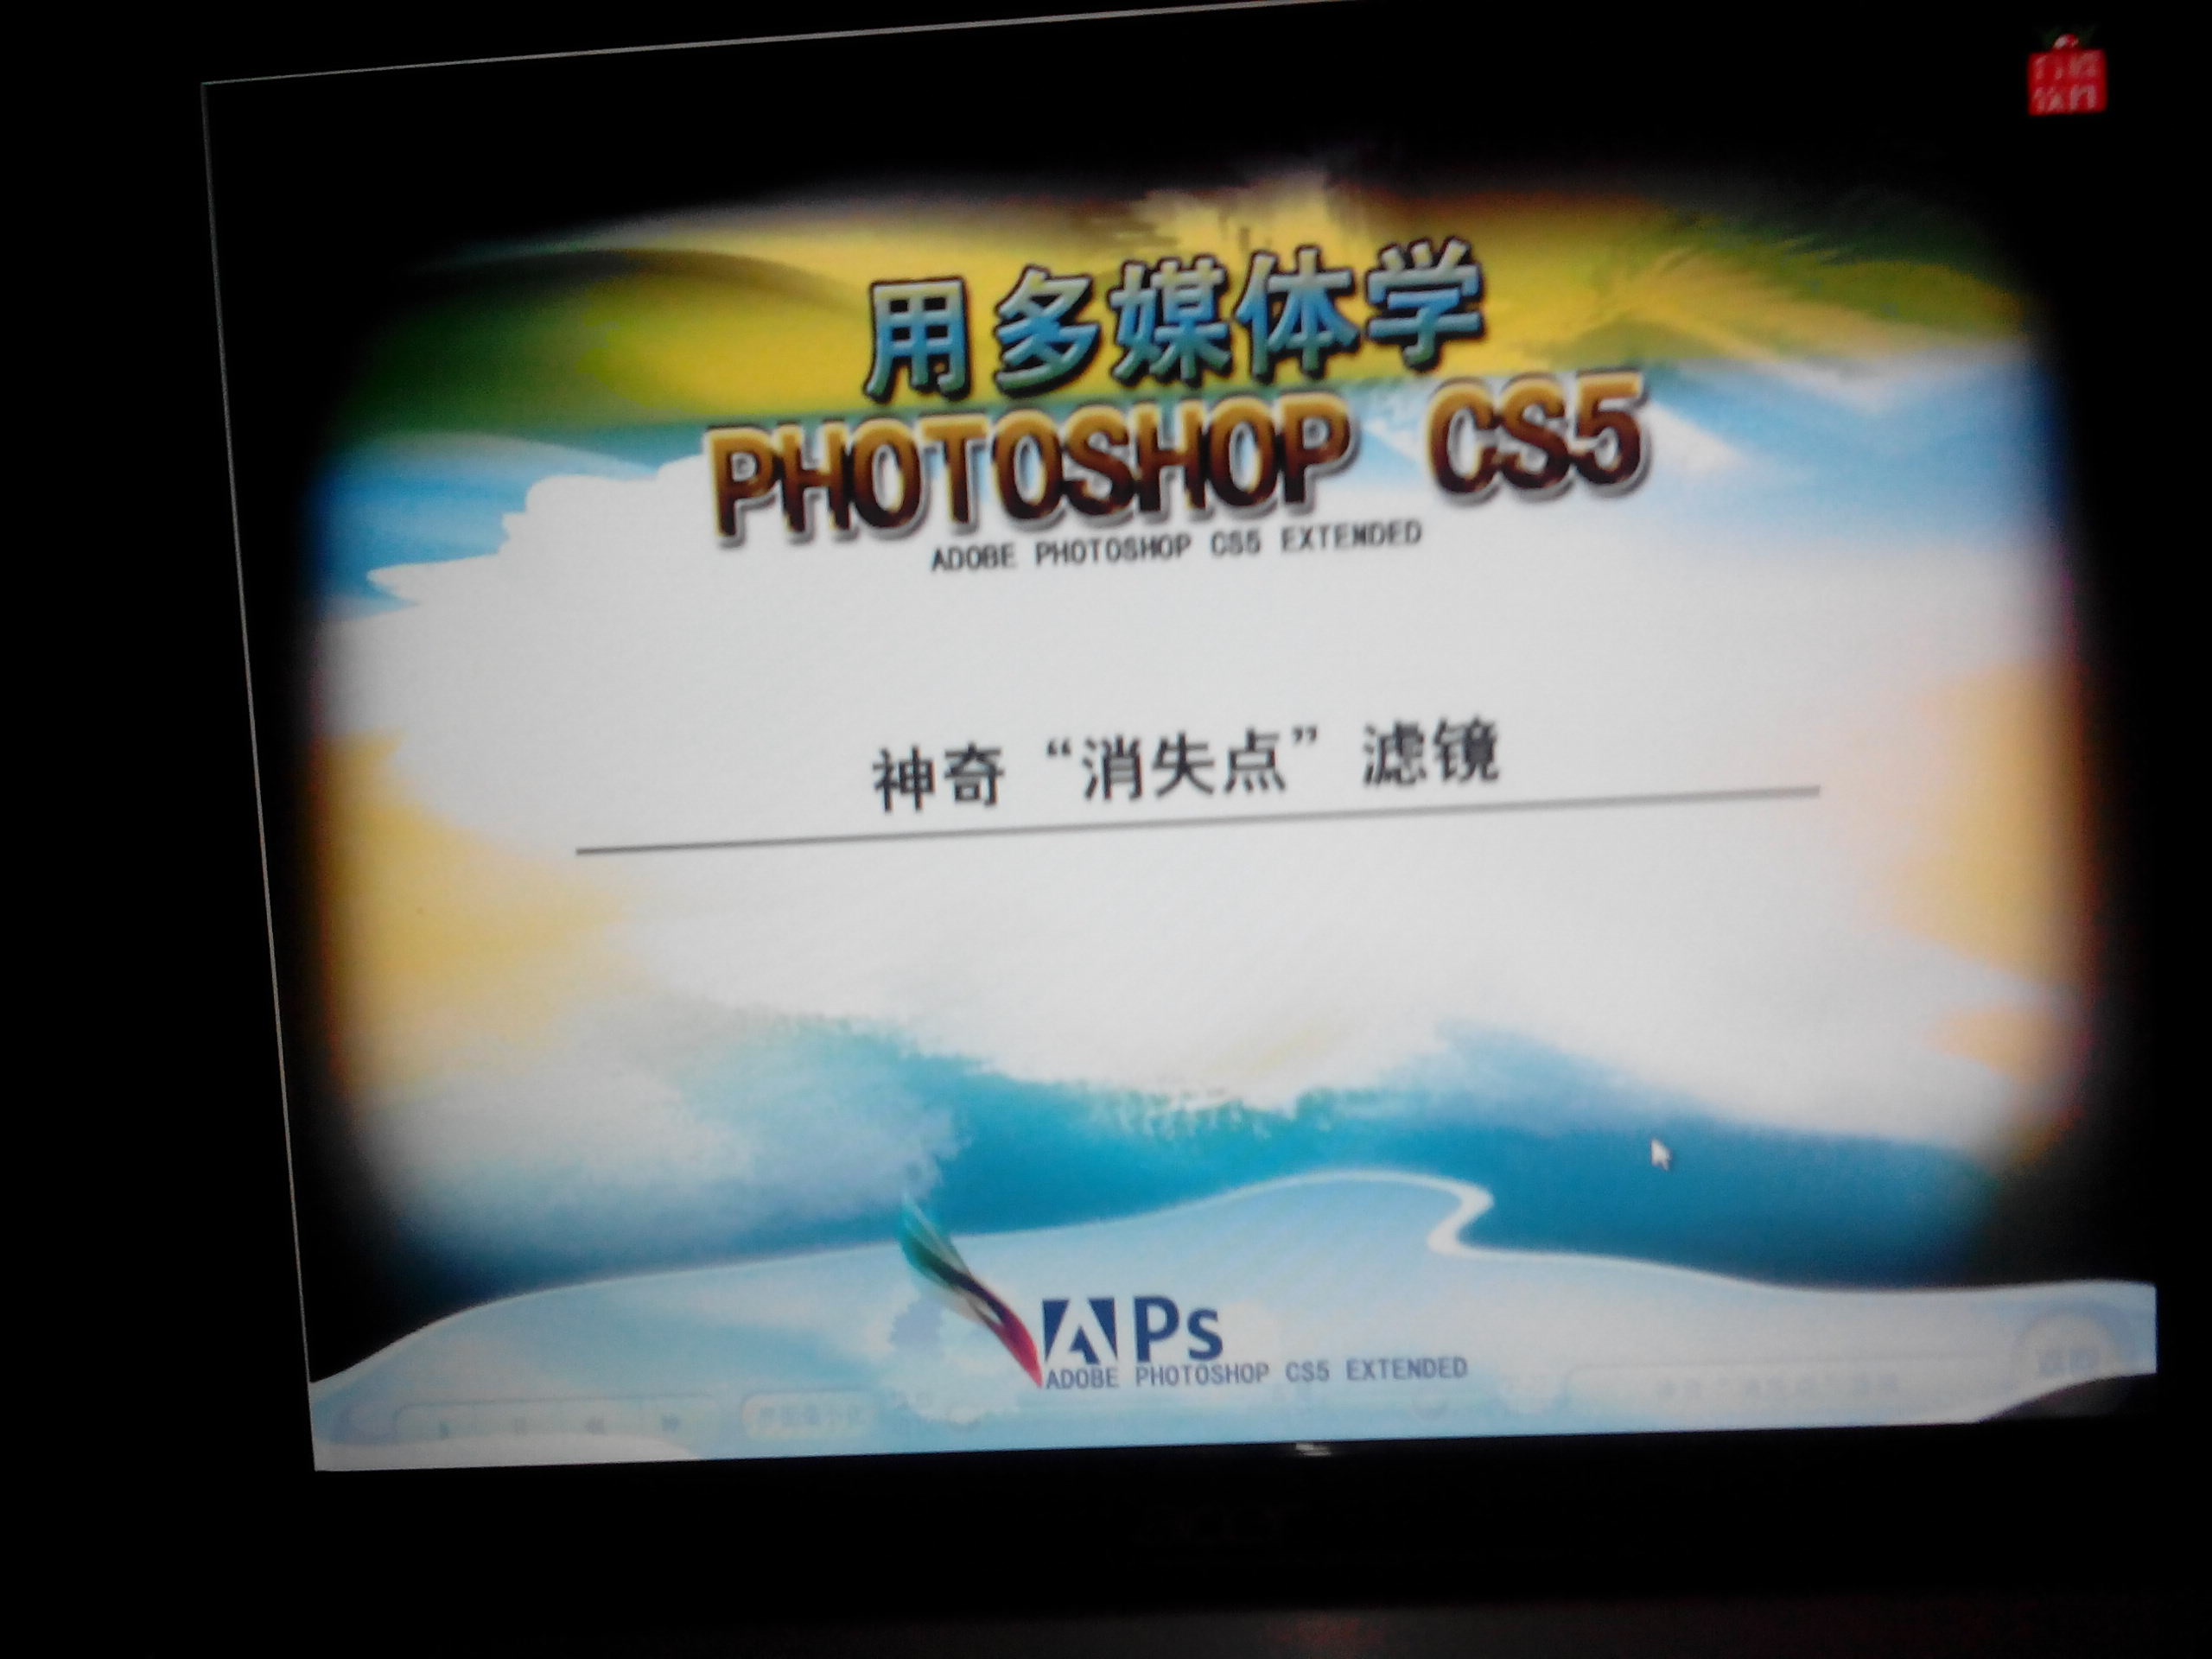 用多媒体学photoshop CS5(2DVD-ROM+1手册) 实拍图